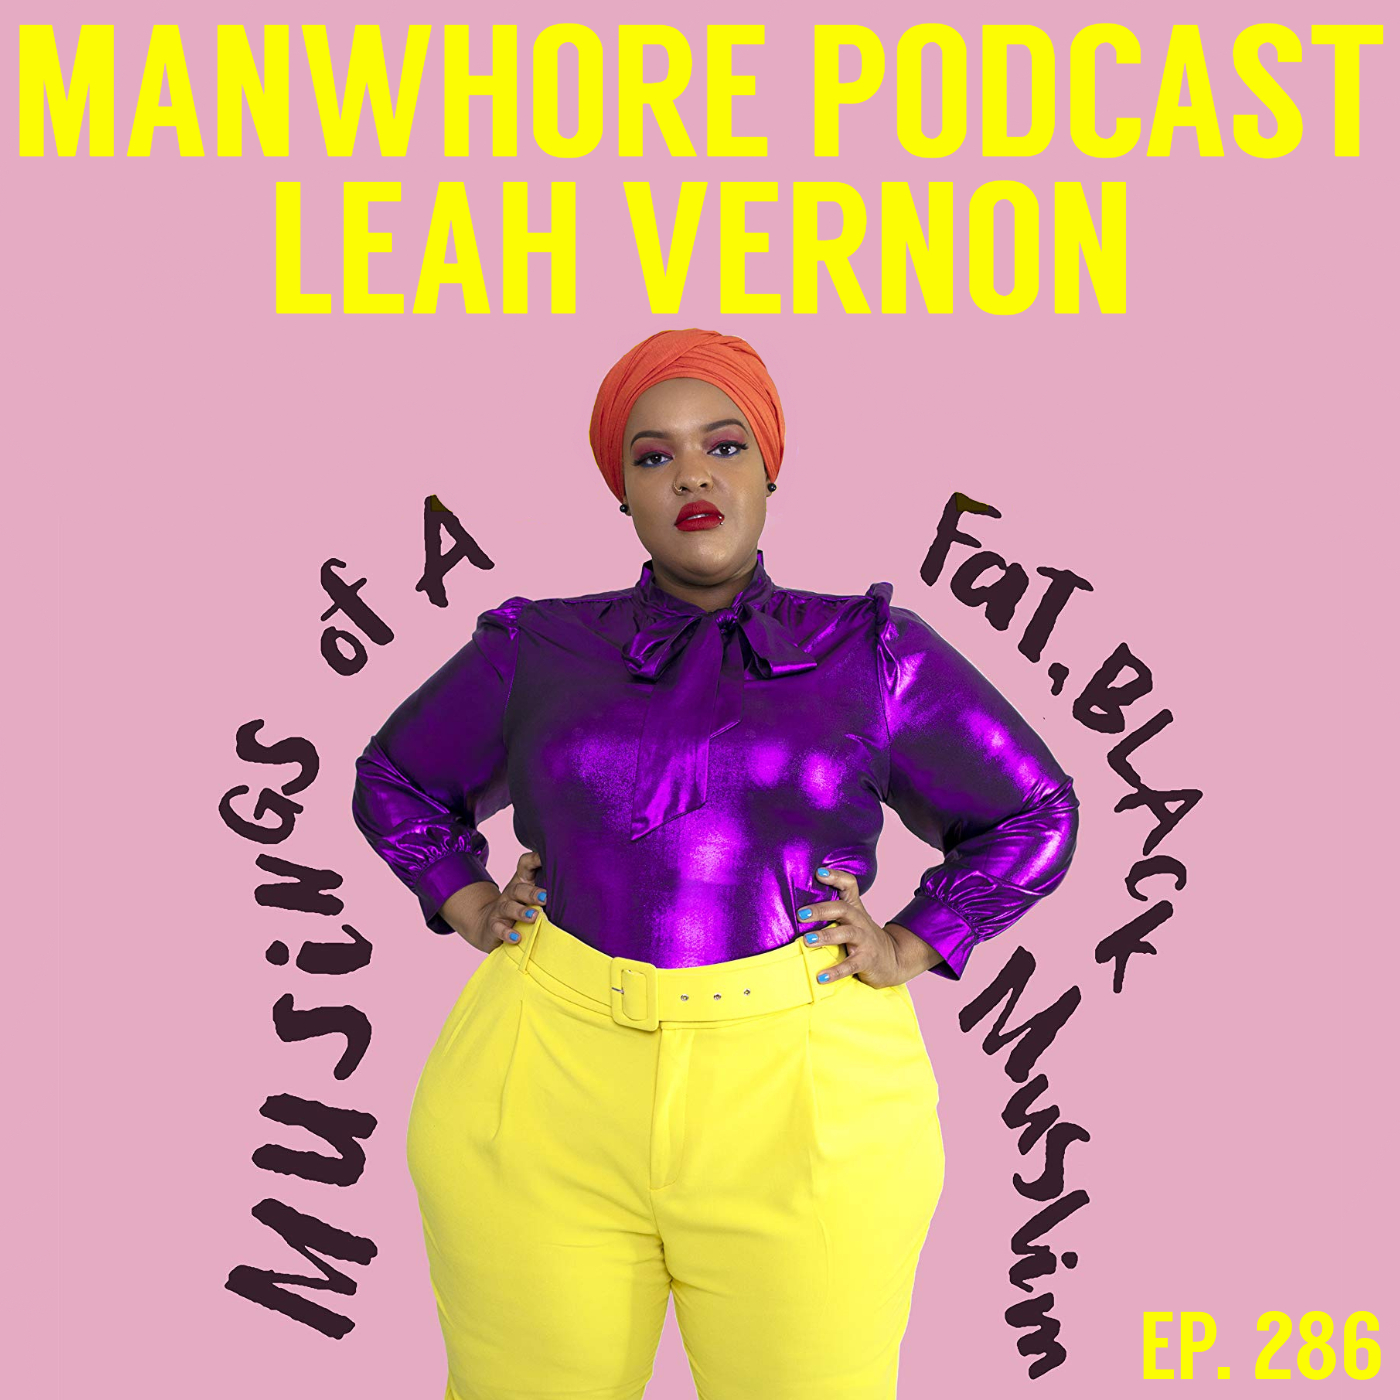 The Manwhore Podcast: A Sex-Positive Quest - Ep. 286: Being Fat, Black, Muslim, and Unashamed with Leah Vernon